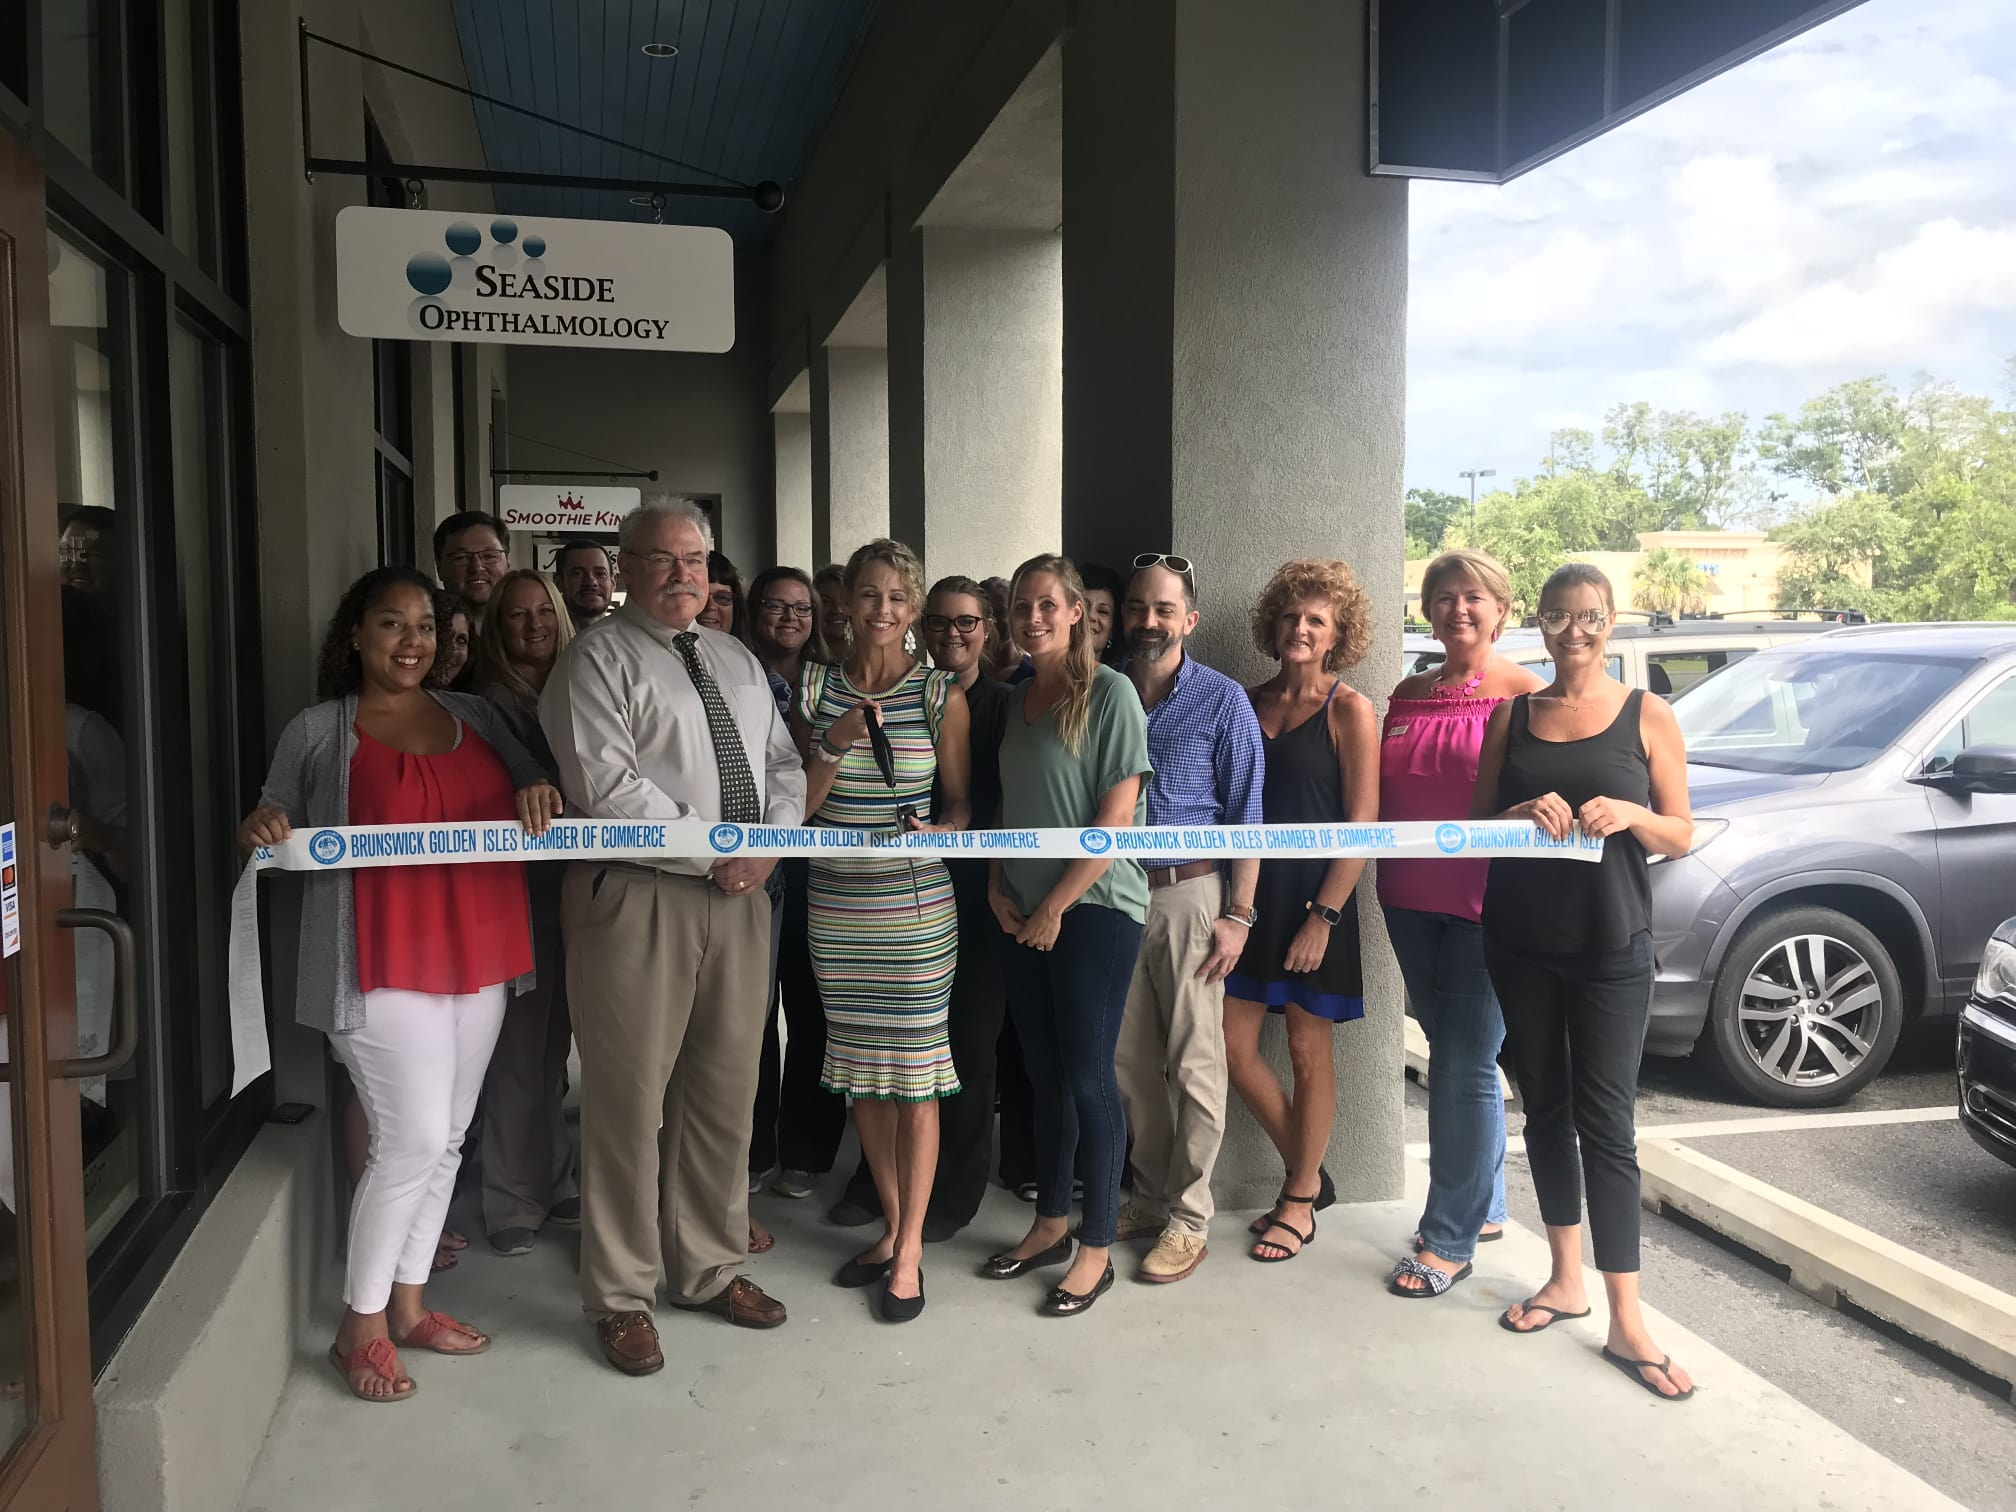 seaside-ophthalmology-ribbon-cutting-06-2018-w2016.jpg